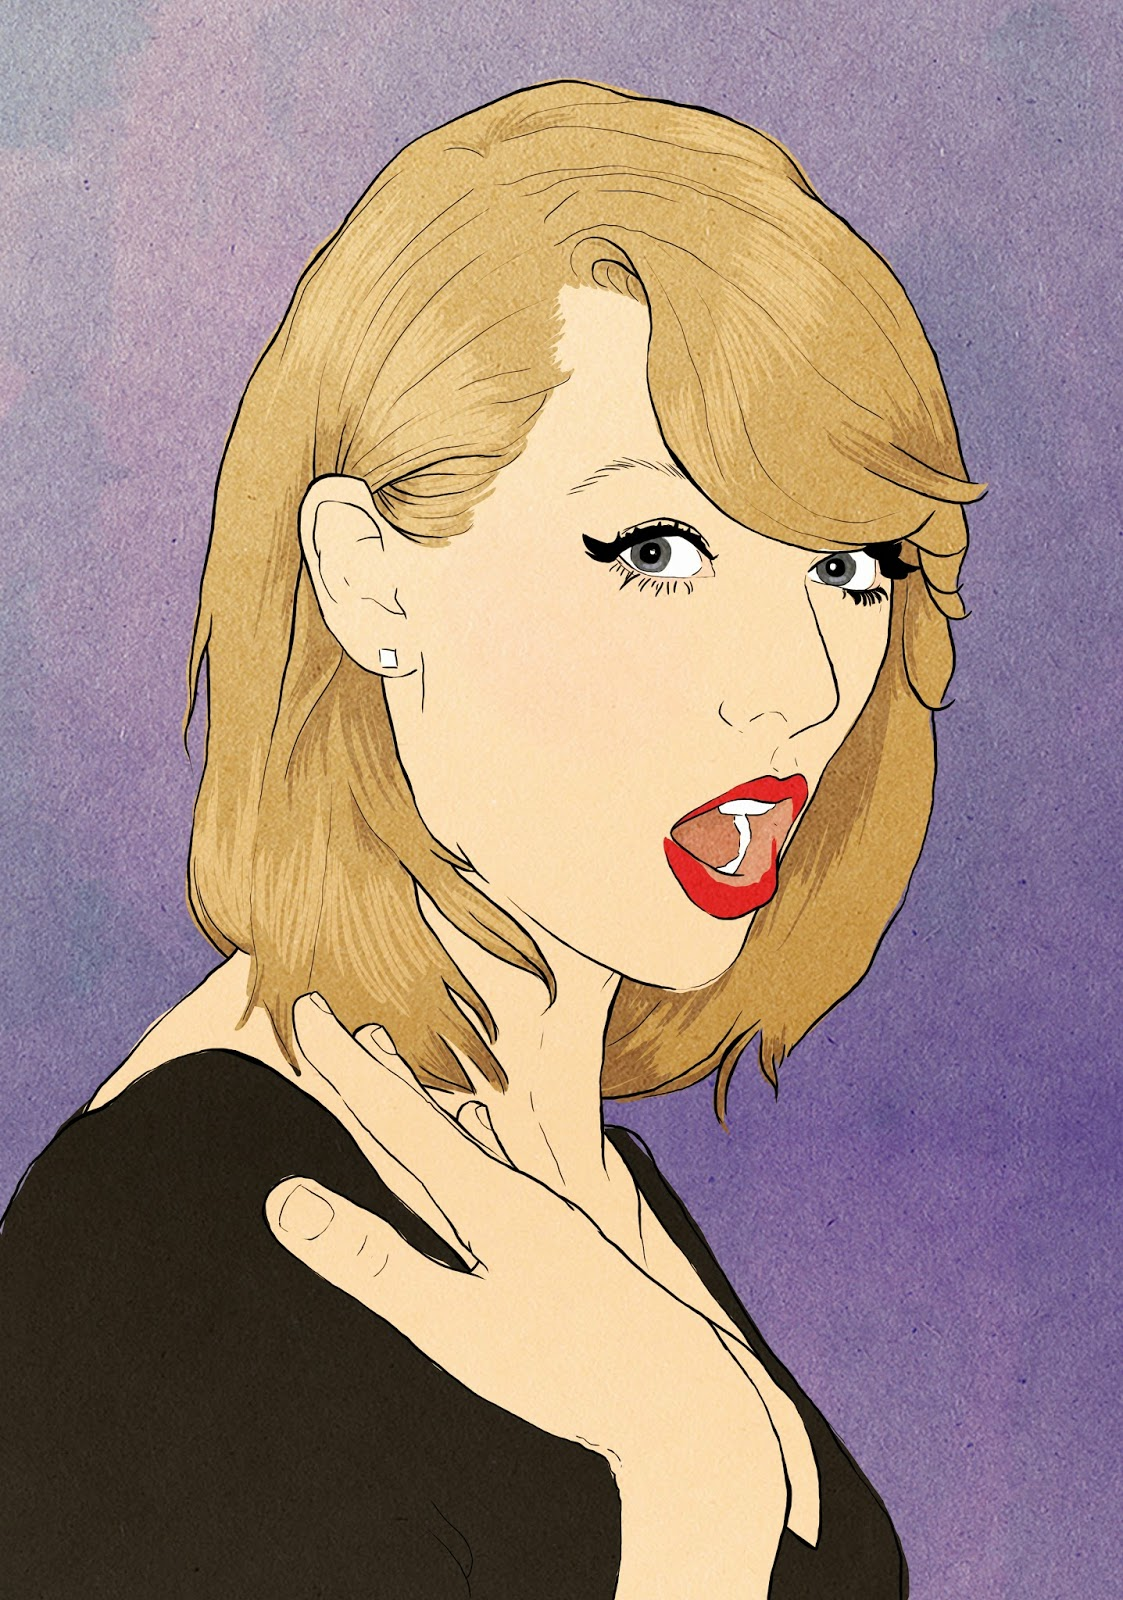 Taylor-Swift-Drawing, Taylor-Swift-Cute, Taylor-Swift-1989, Taylor-Swift-Is-My-Spirit-Animal, Taylor-Swift-2014